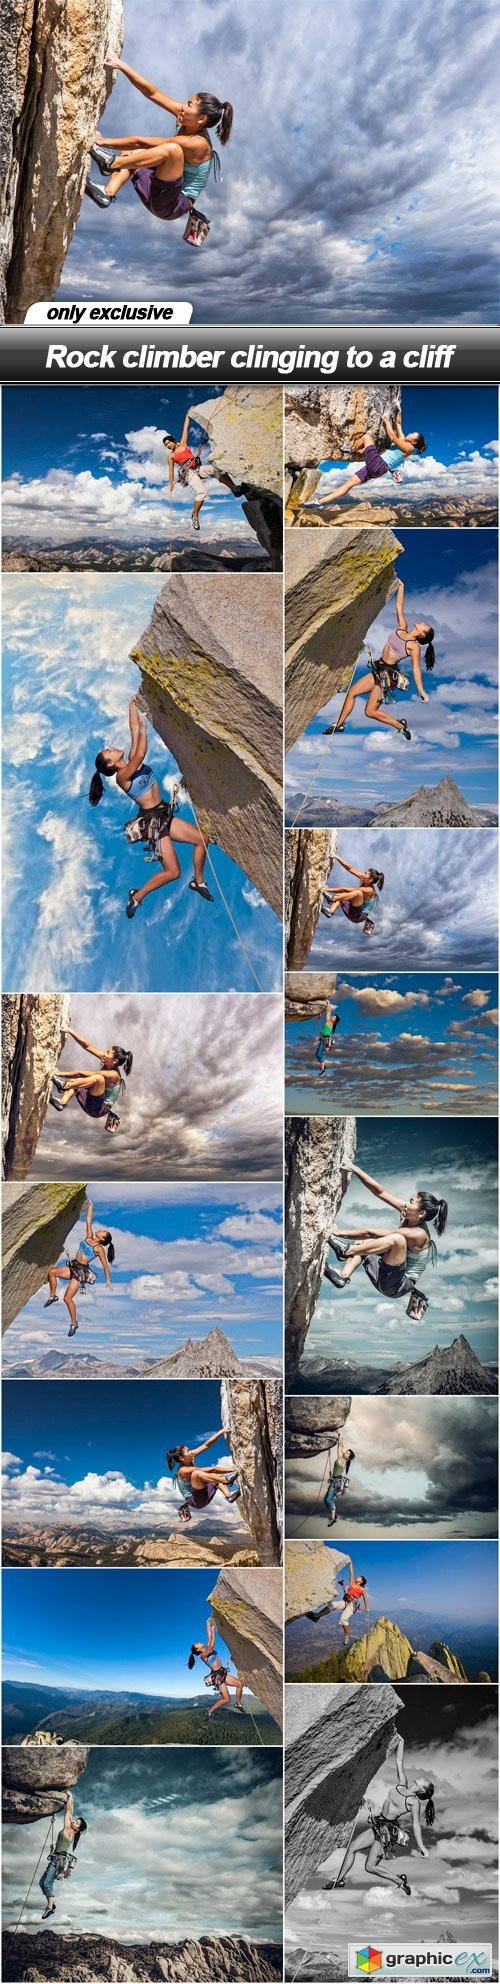 Rock climber clinging to a cliff - 44 UHQ JPEG